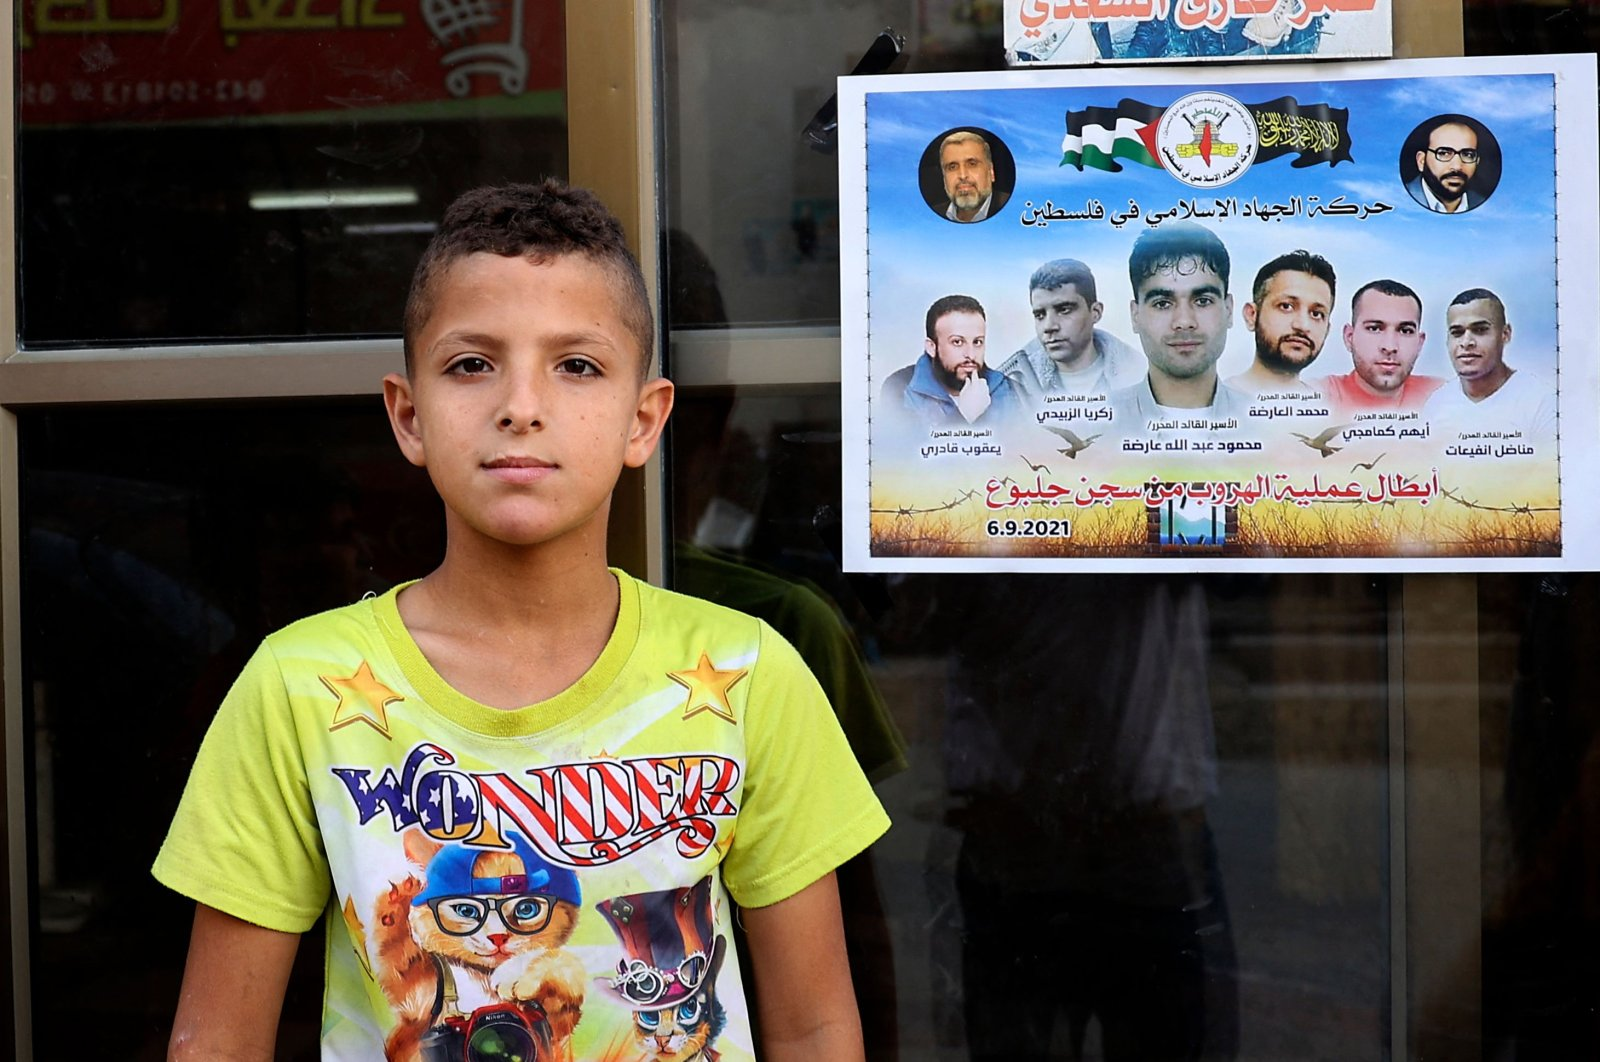 A Palestinian child looks on while standing next to a poster expressing solidarity with the six Palestinian prisoners who escaped from Israel's Gilboa prison, hanging outside a shop at the Jenin camp for Palestinian refugees in the north of the occupied West Bank, Palestine, Sept. 12, 2021. (AFP Photo)